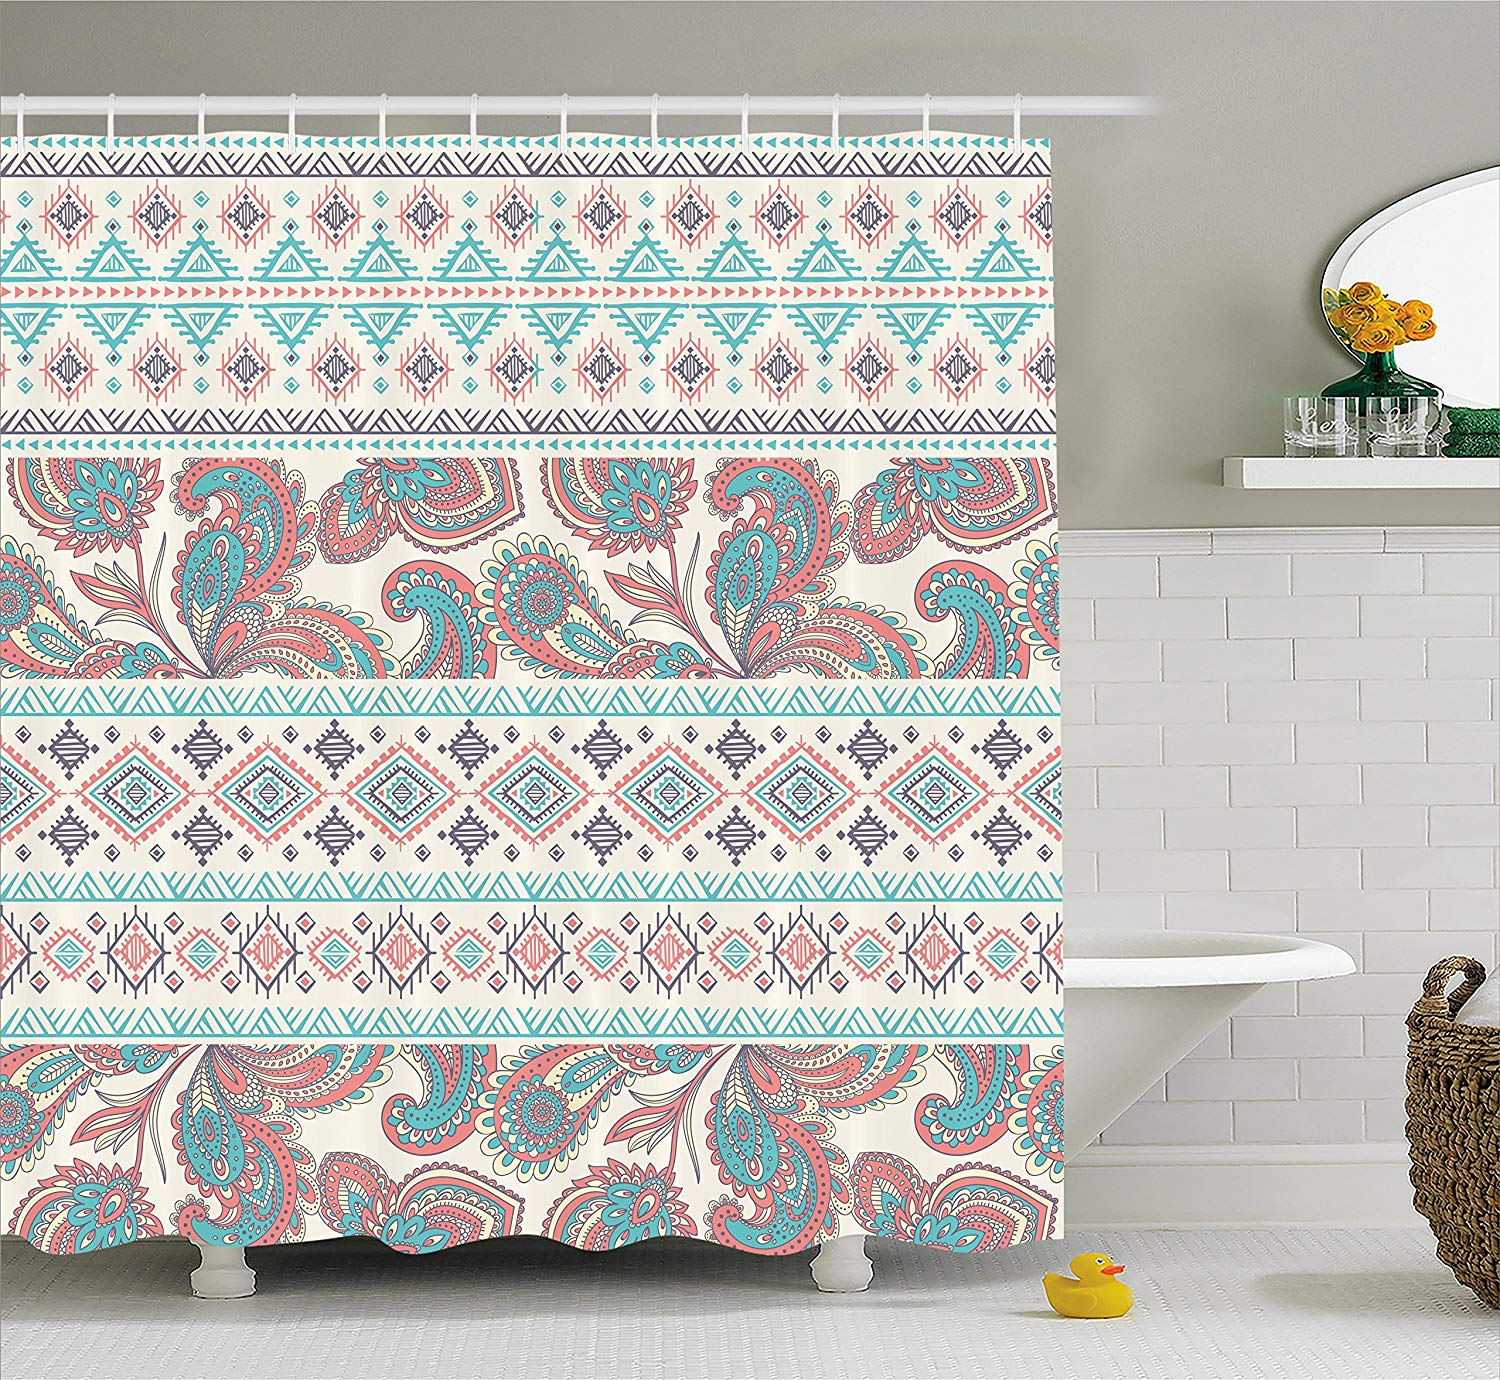 Tribal Shower Curtain Paisley Patterns In Native Aztec In